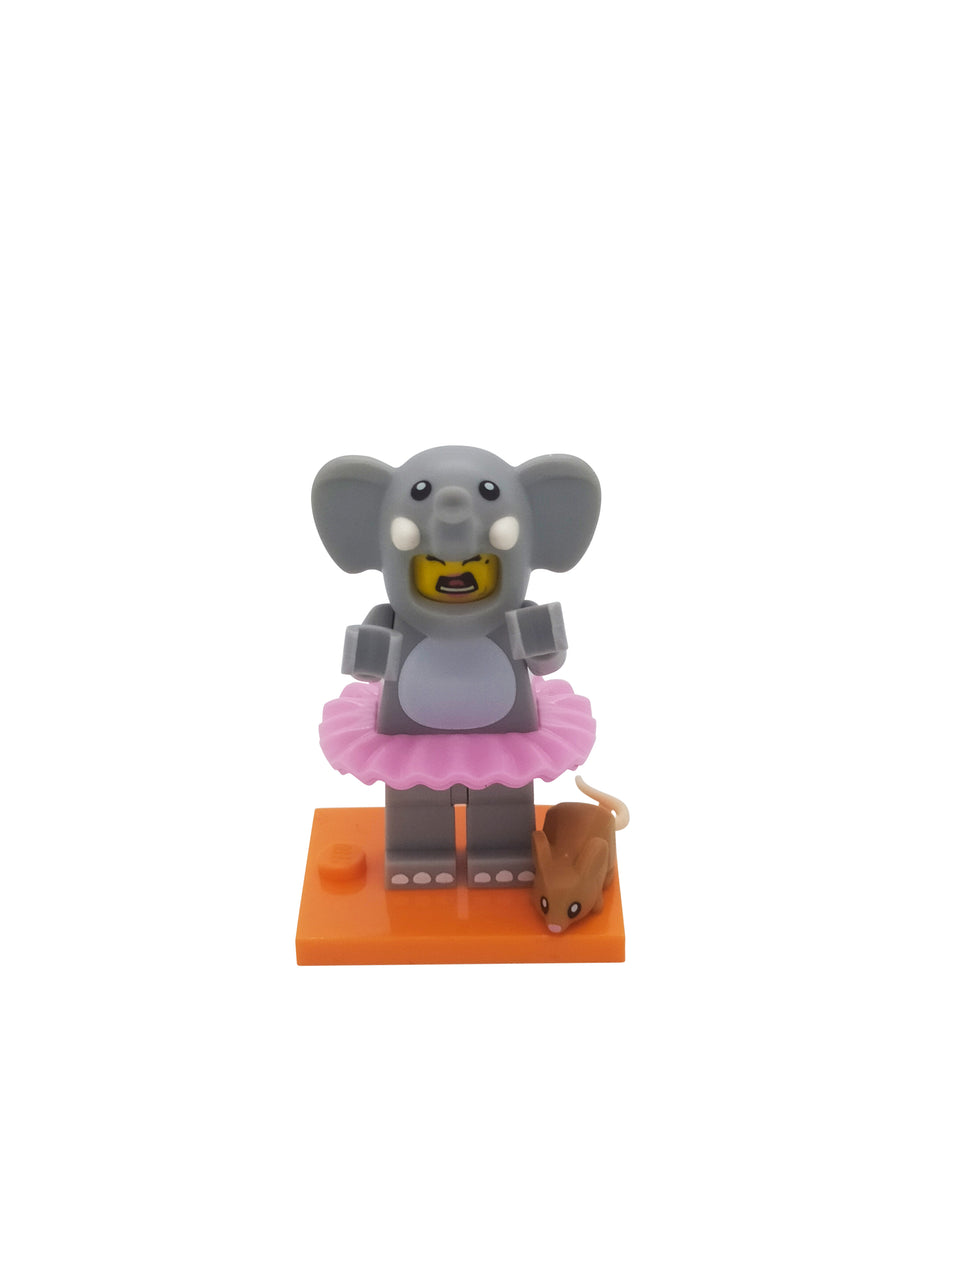 LEGO NEW SERIES 18 MINIFIGURE 71021 Elephant Costume Suit Girl FIGURE